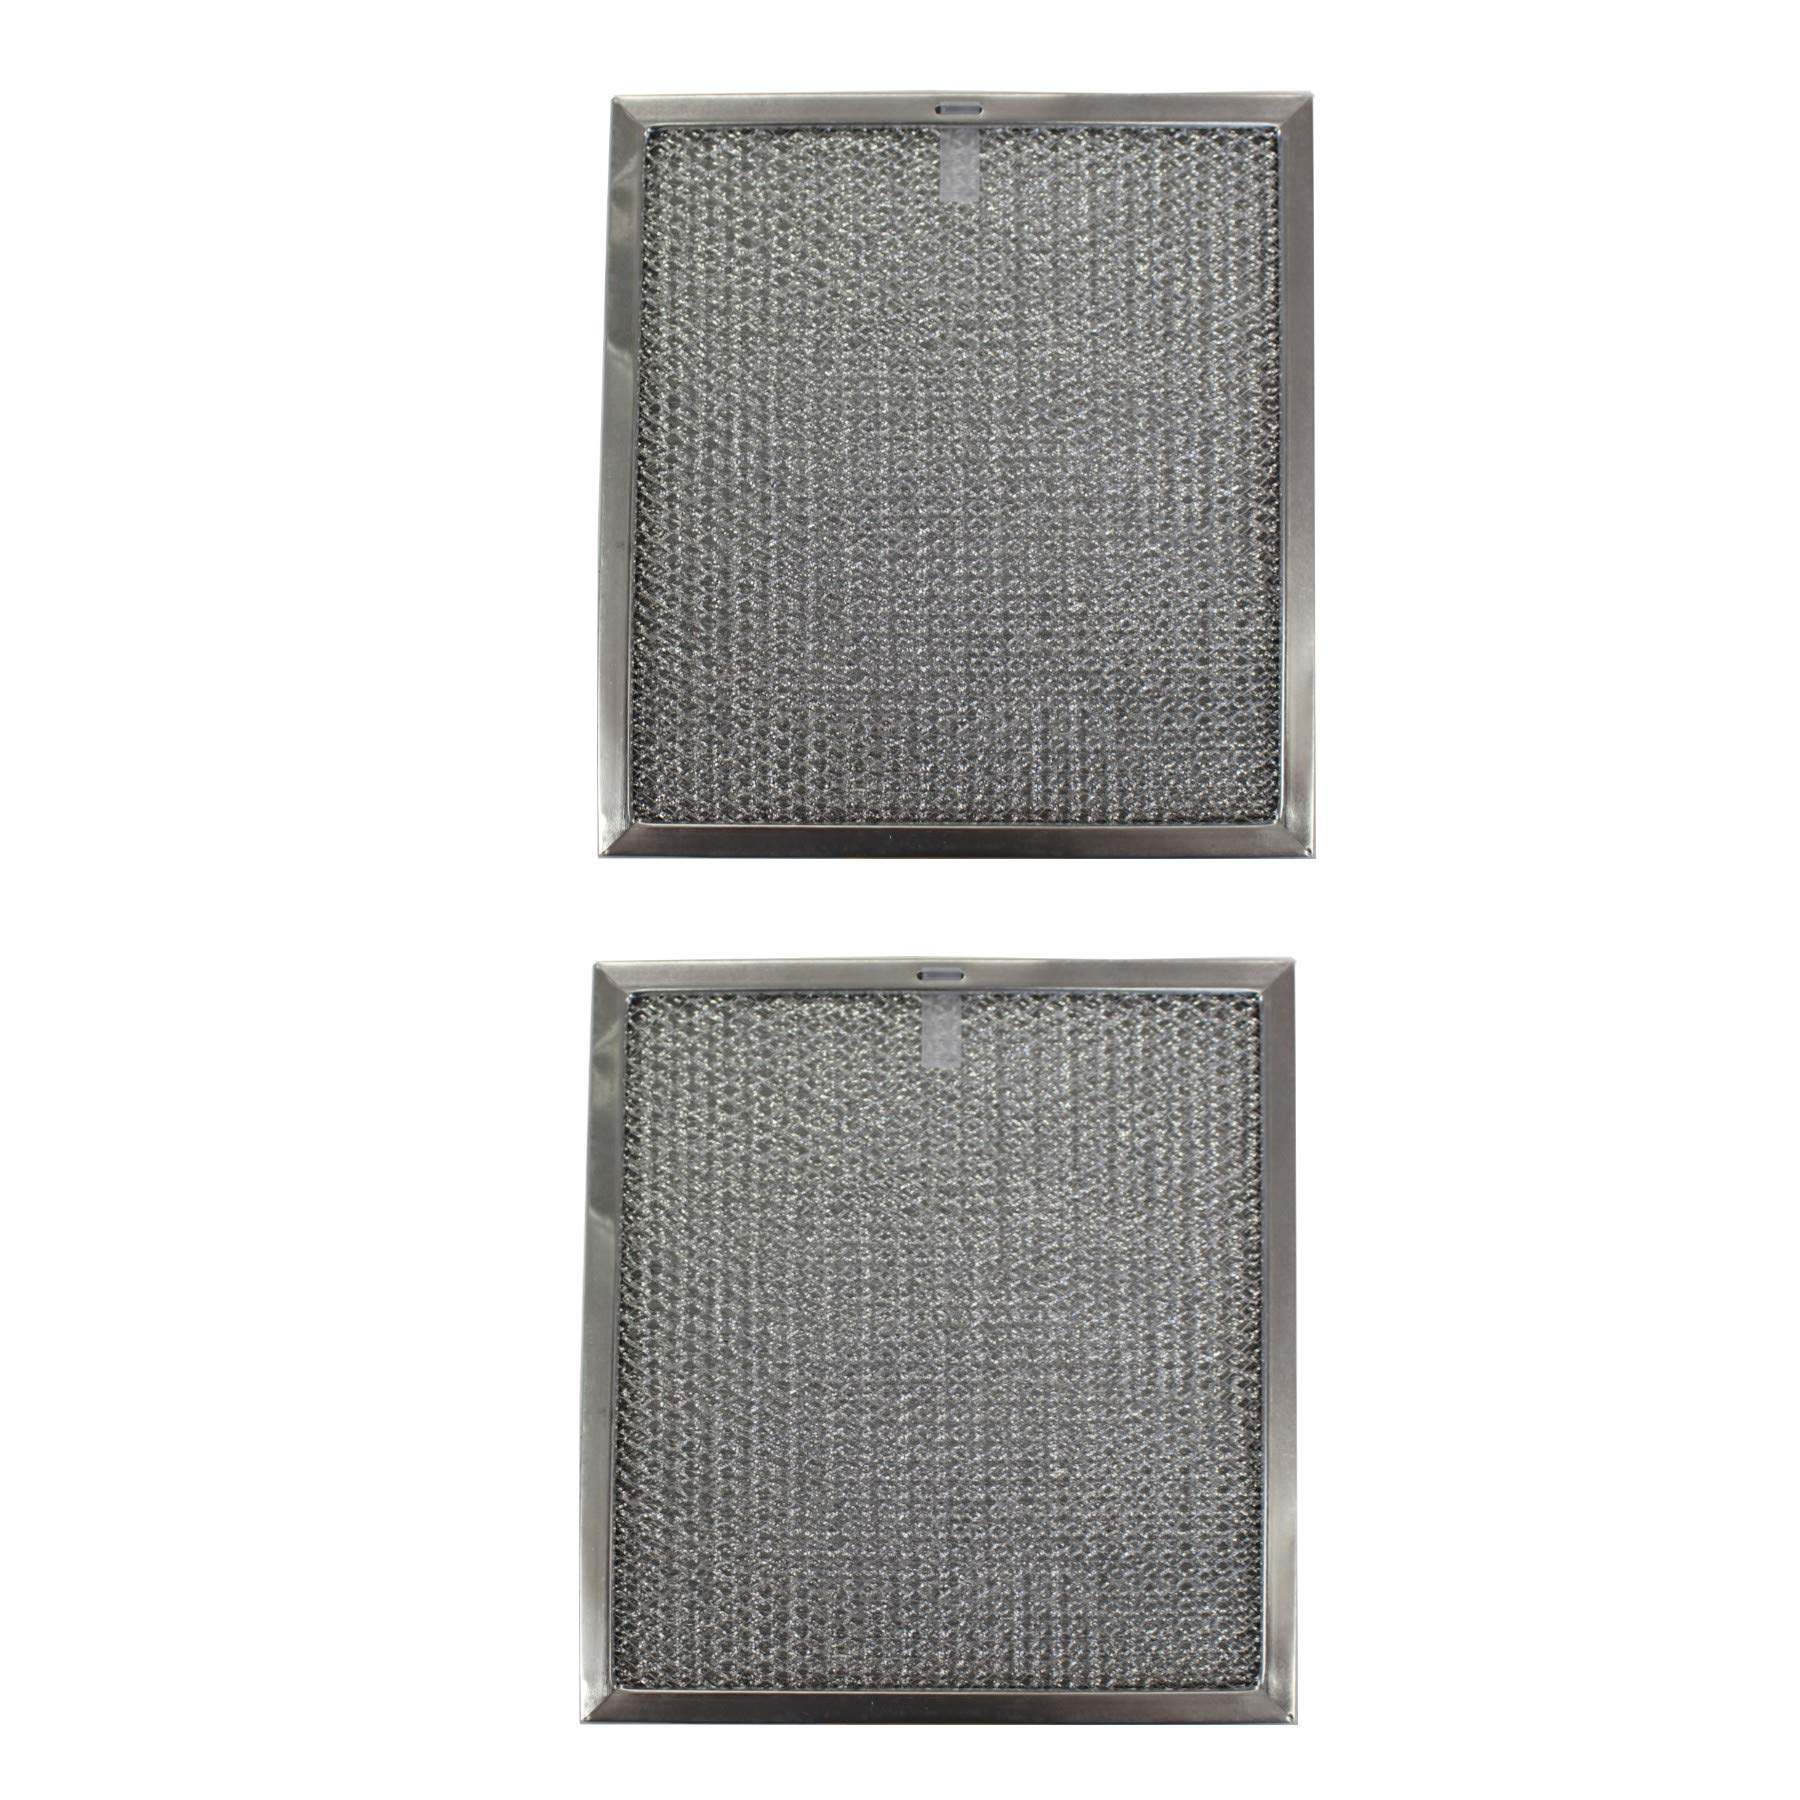 Replacement Aluminum Filters Compatible with Nutone 25791 000,G 8628,RHF1302  13 1/4 x 15 1/2 x 1/2